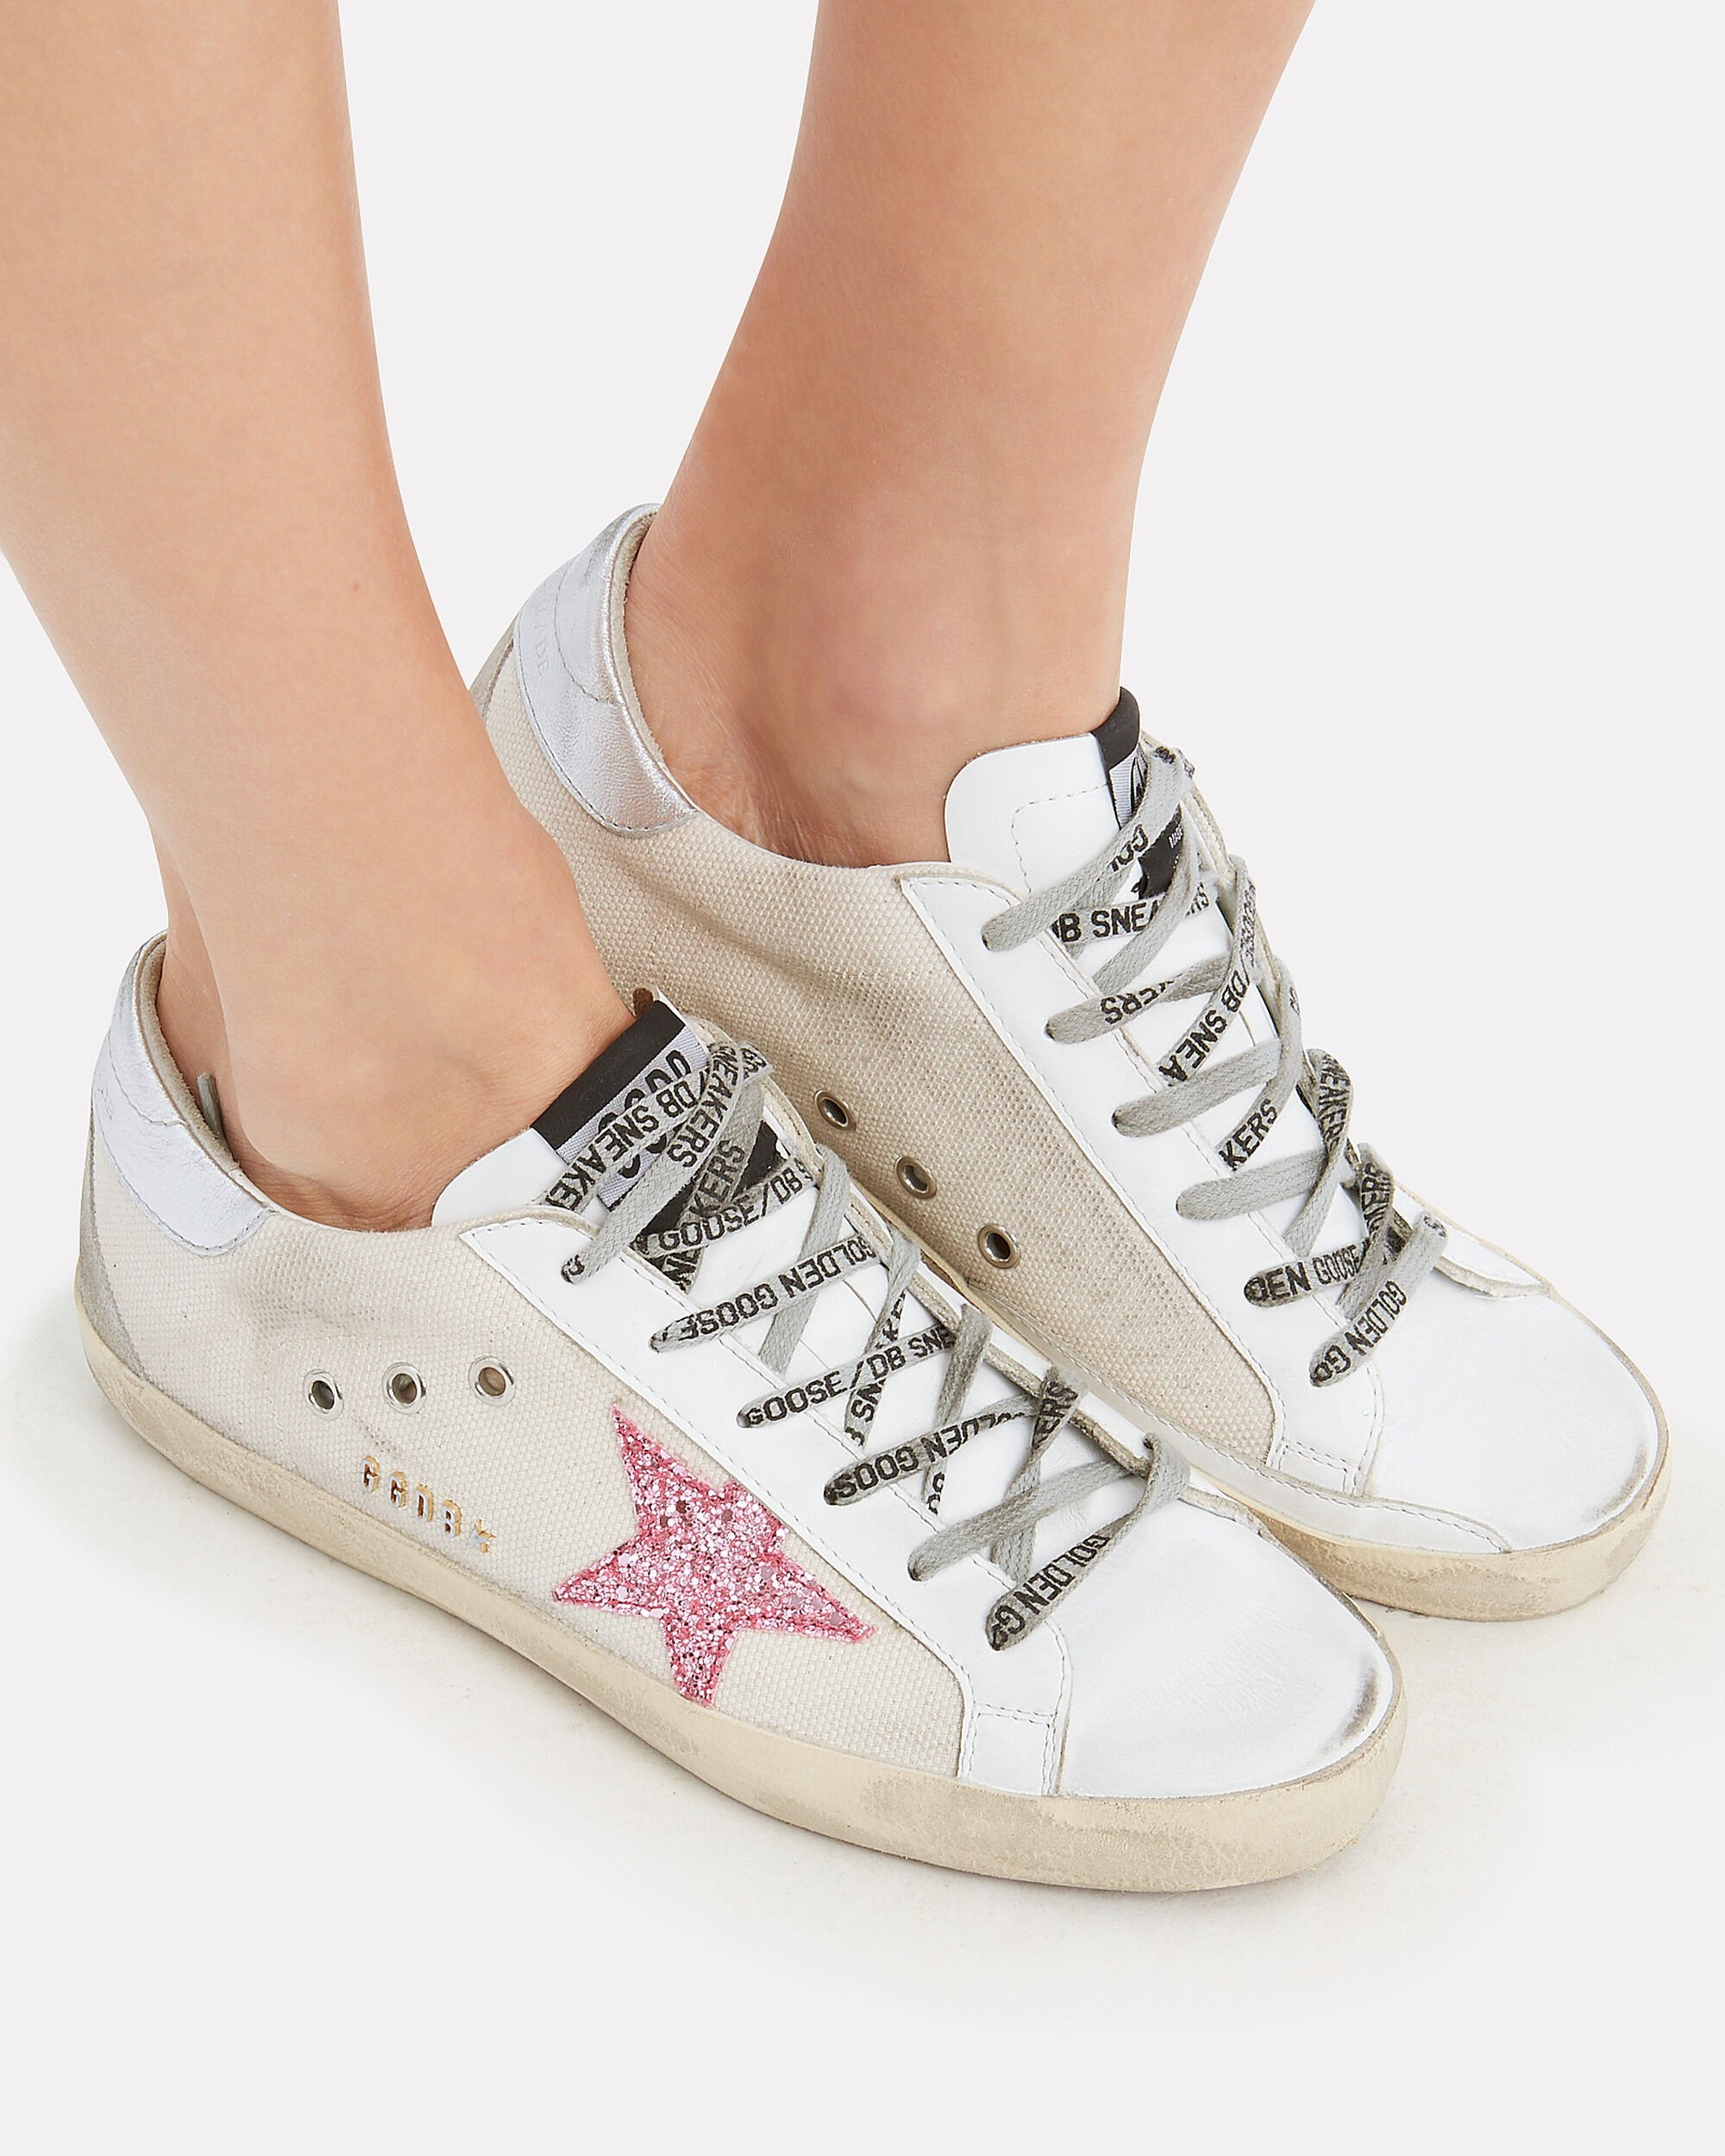 Superstar Pink Glitter Star Canvas Low-Top Sneakers, WHITE/SILVER/PINK GLITTER, hi-res